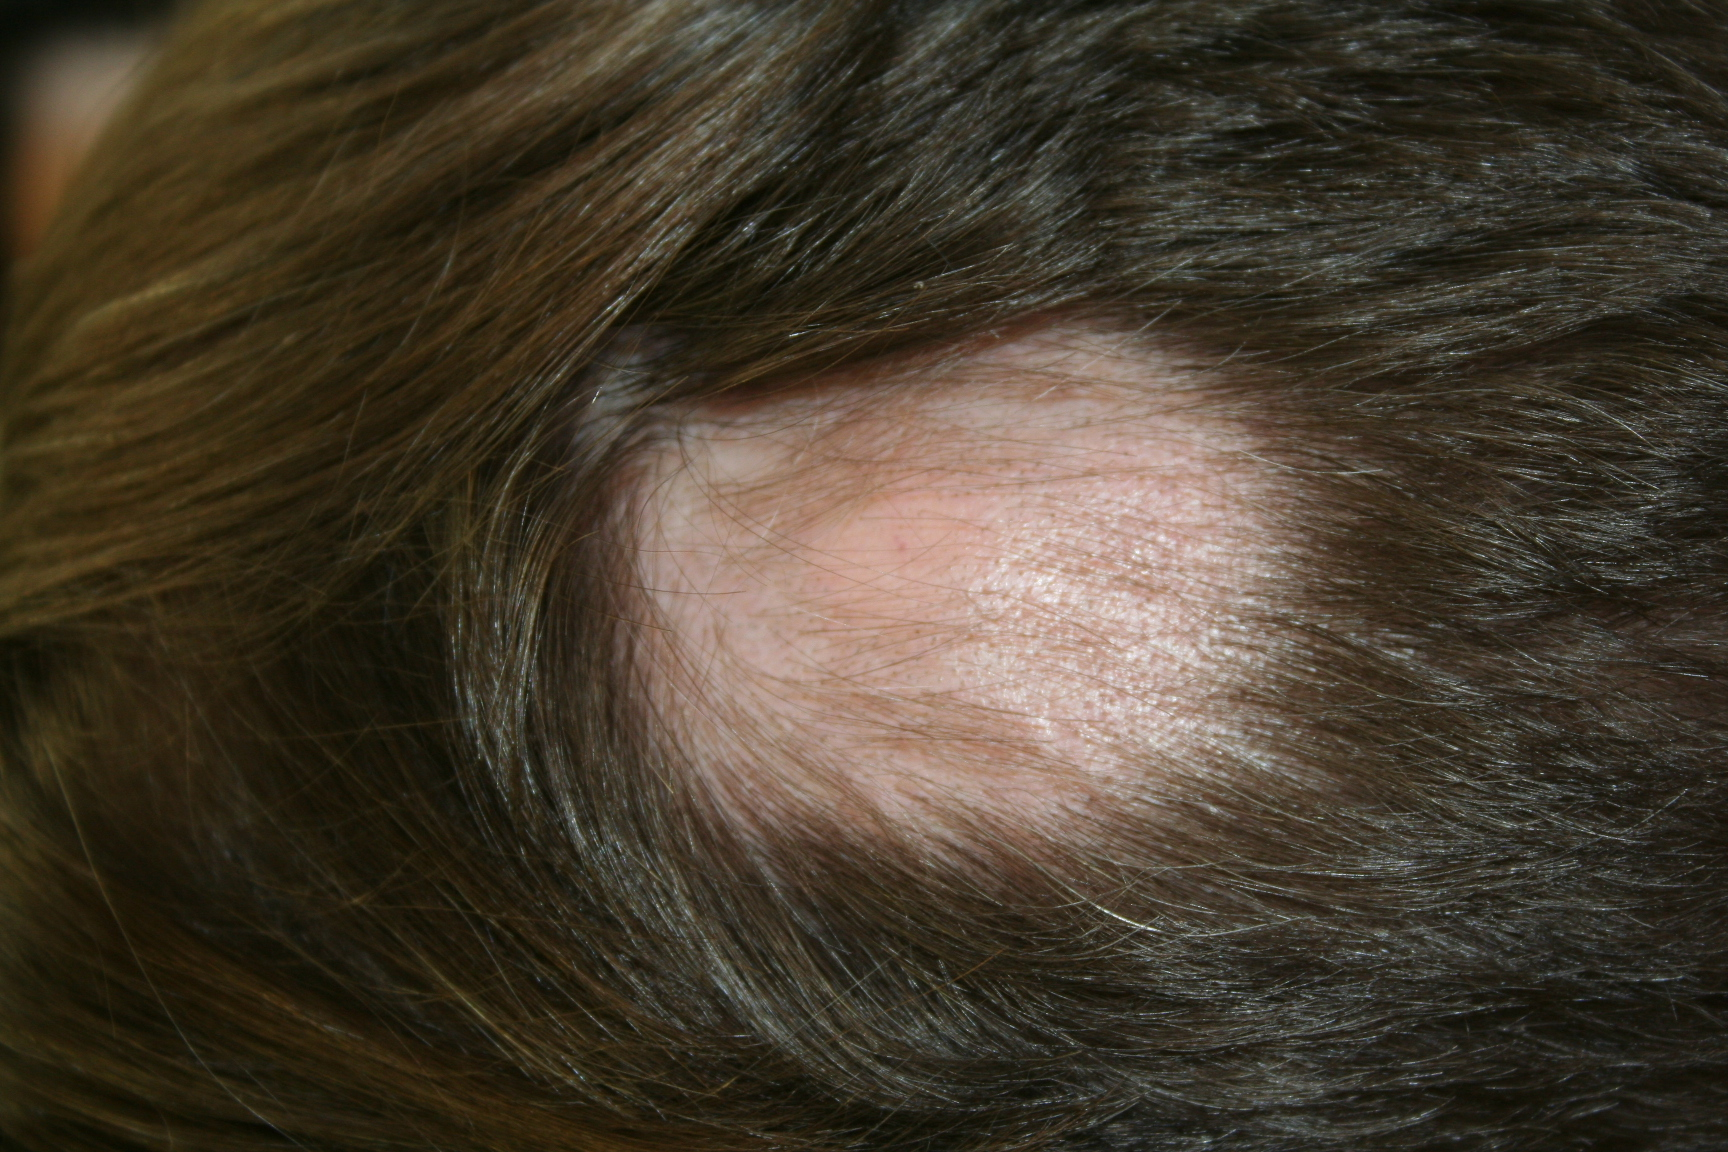 Black hair spot on head